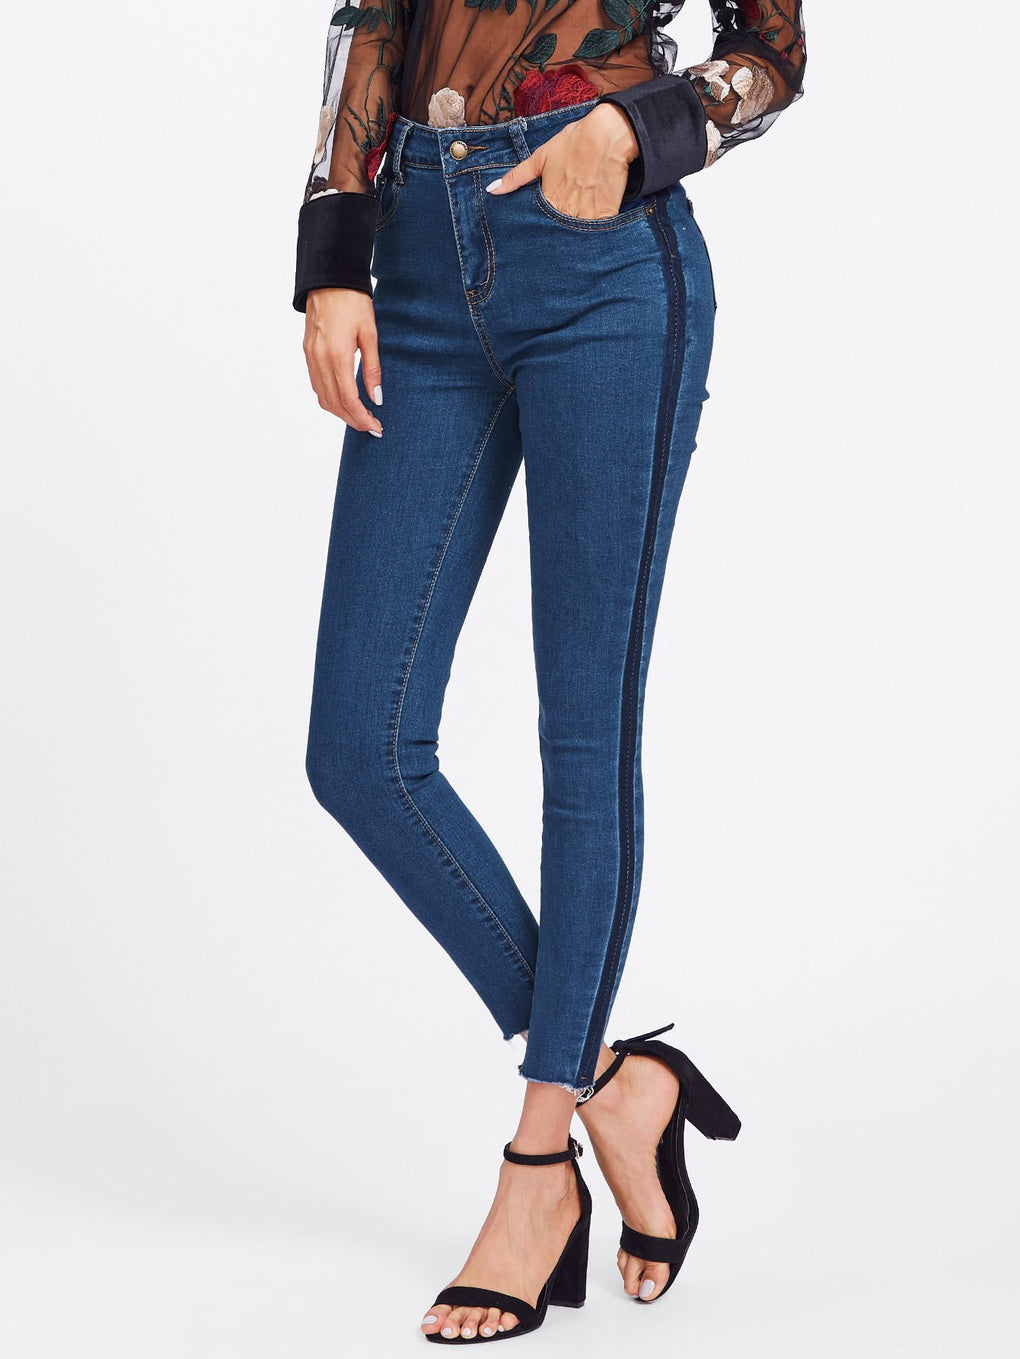 Contrast Side Striped Frayed Hem Jeans - Danish Fashion & Living Online Store SALE